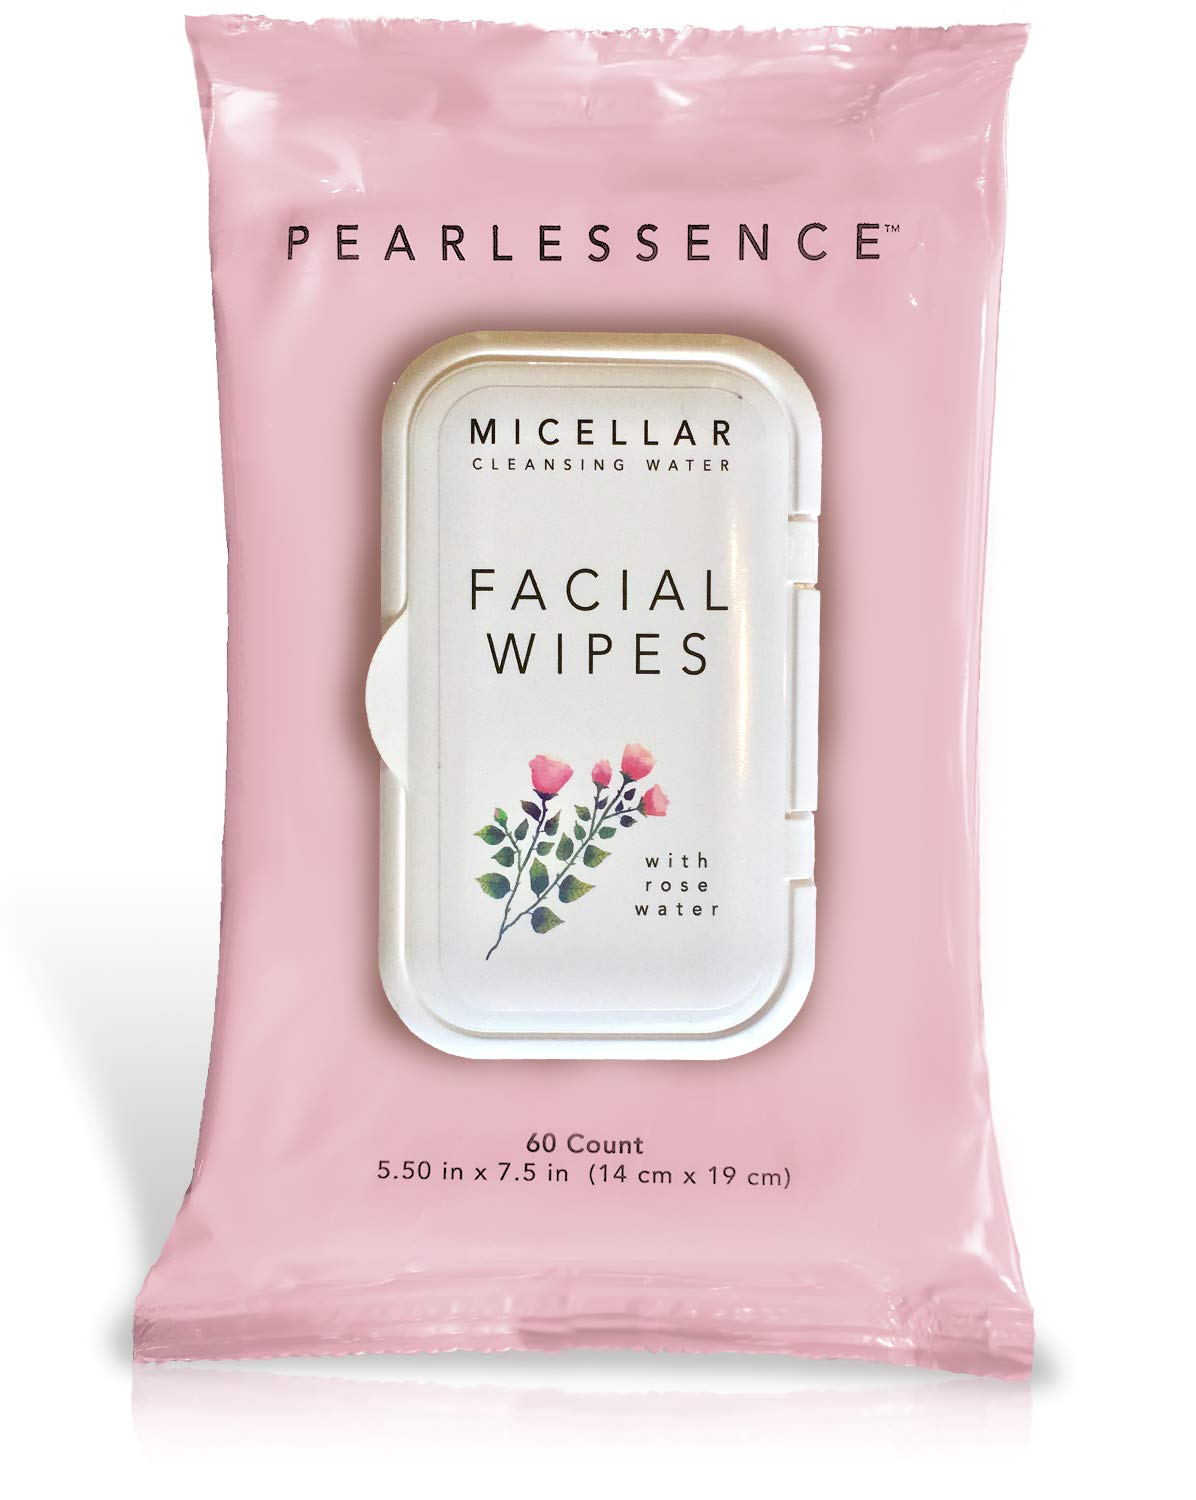 Micellar Cleansing Facial Makeup Remover Wipes w/Rose Water, 60 Count (1 Pack)